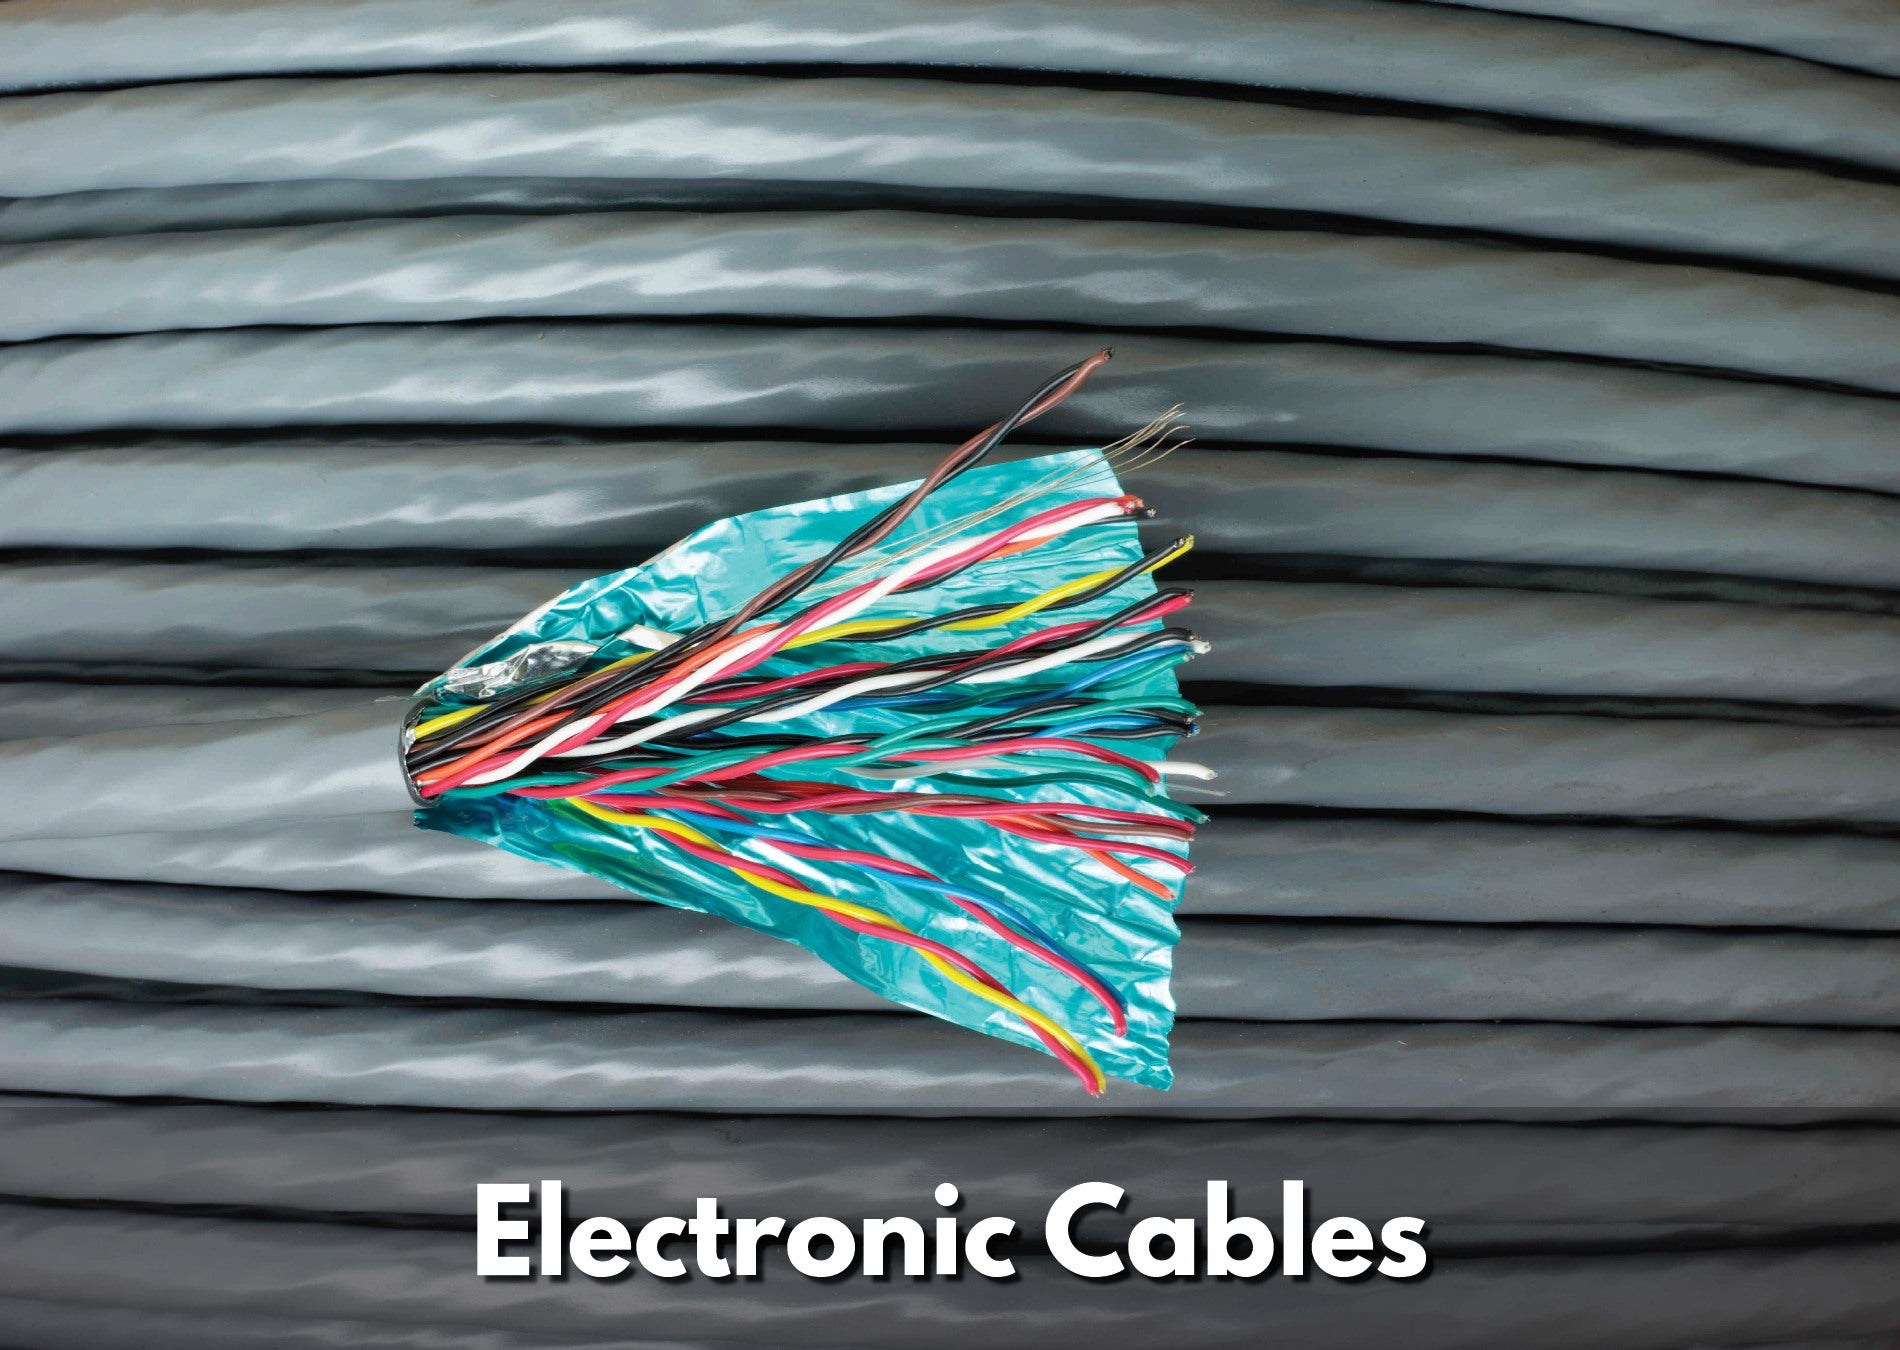 Texcan - View All Products - Electronic Cables.jpg